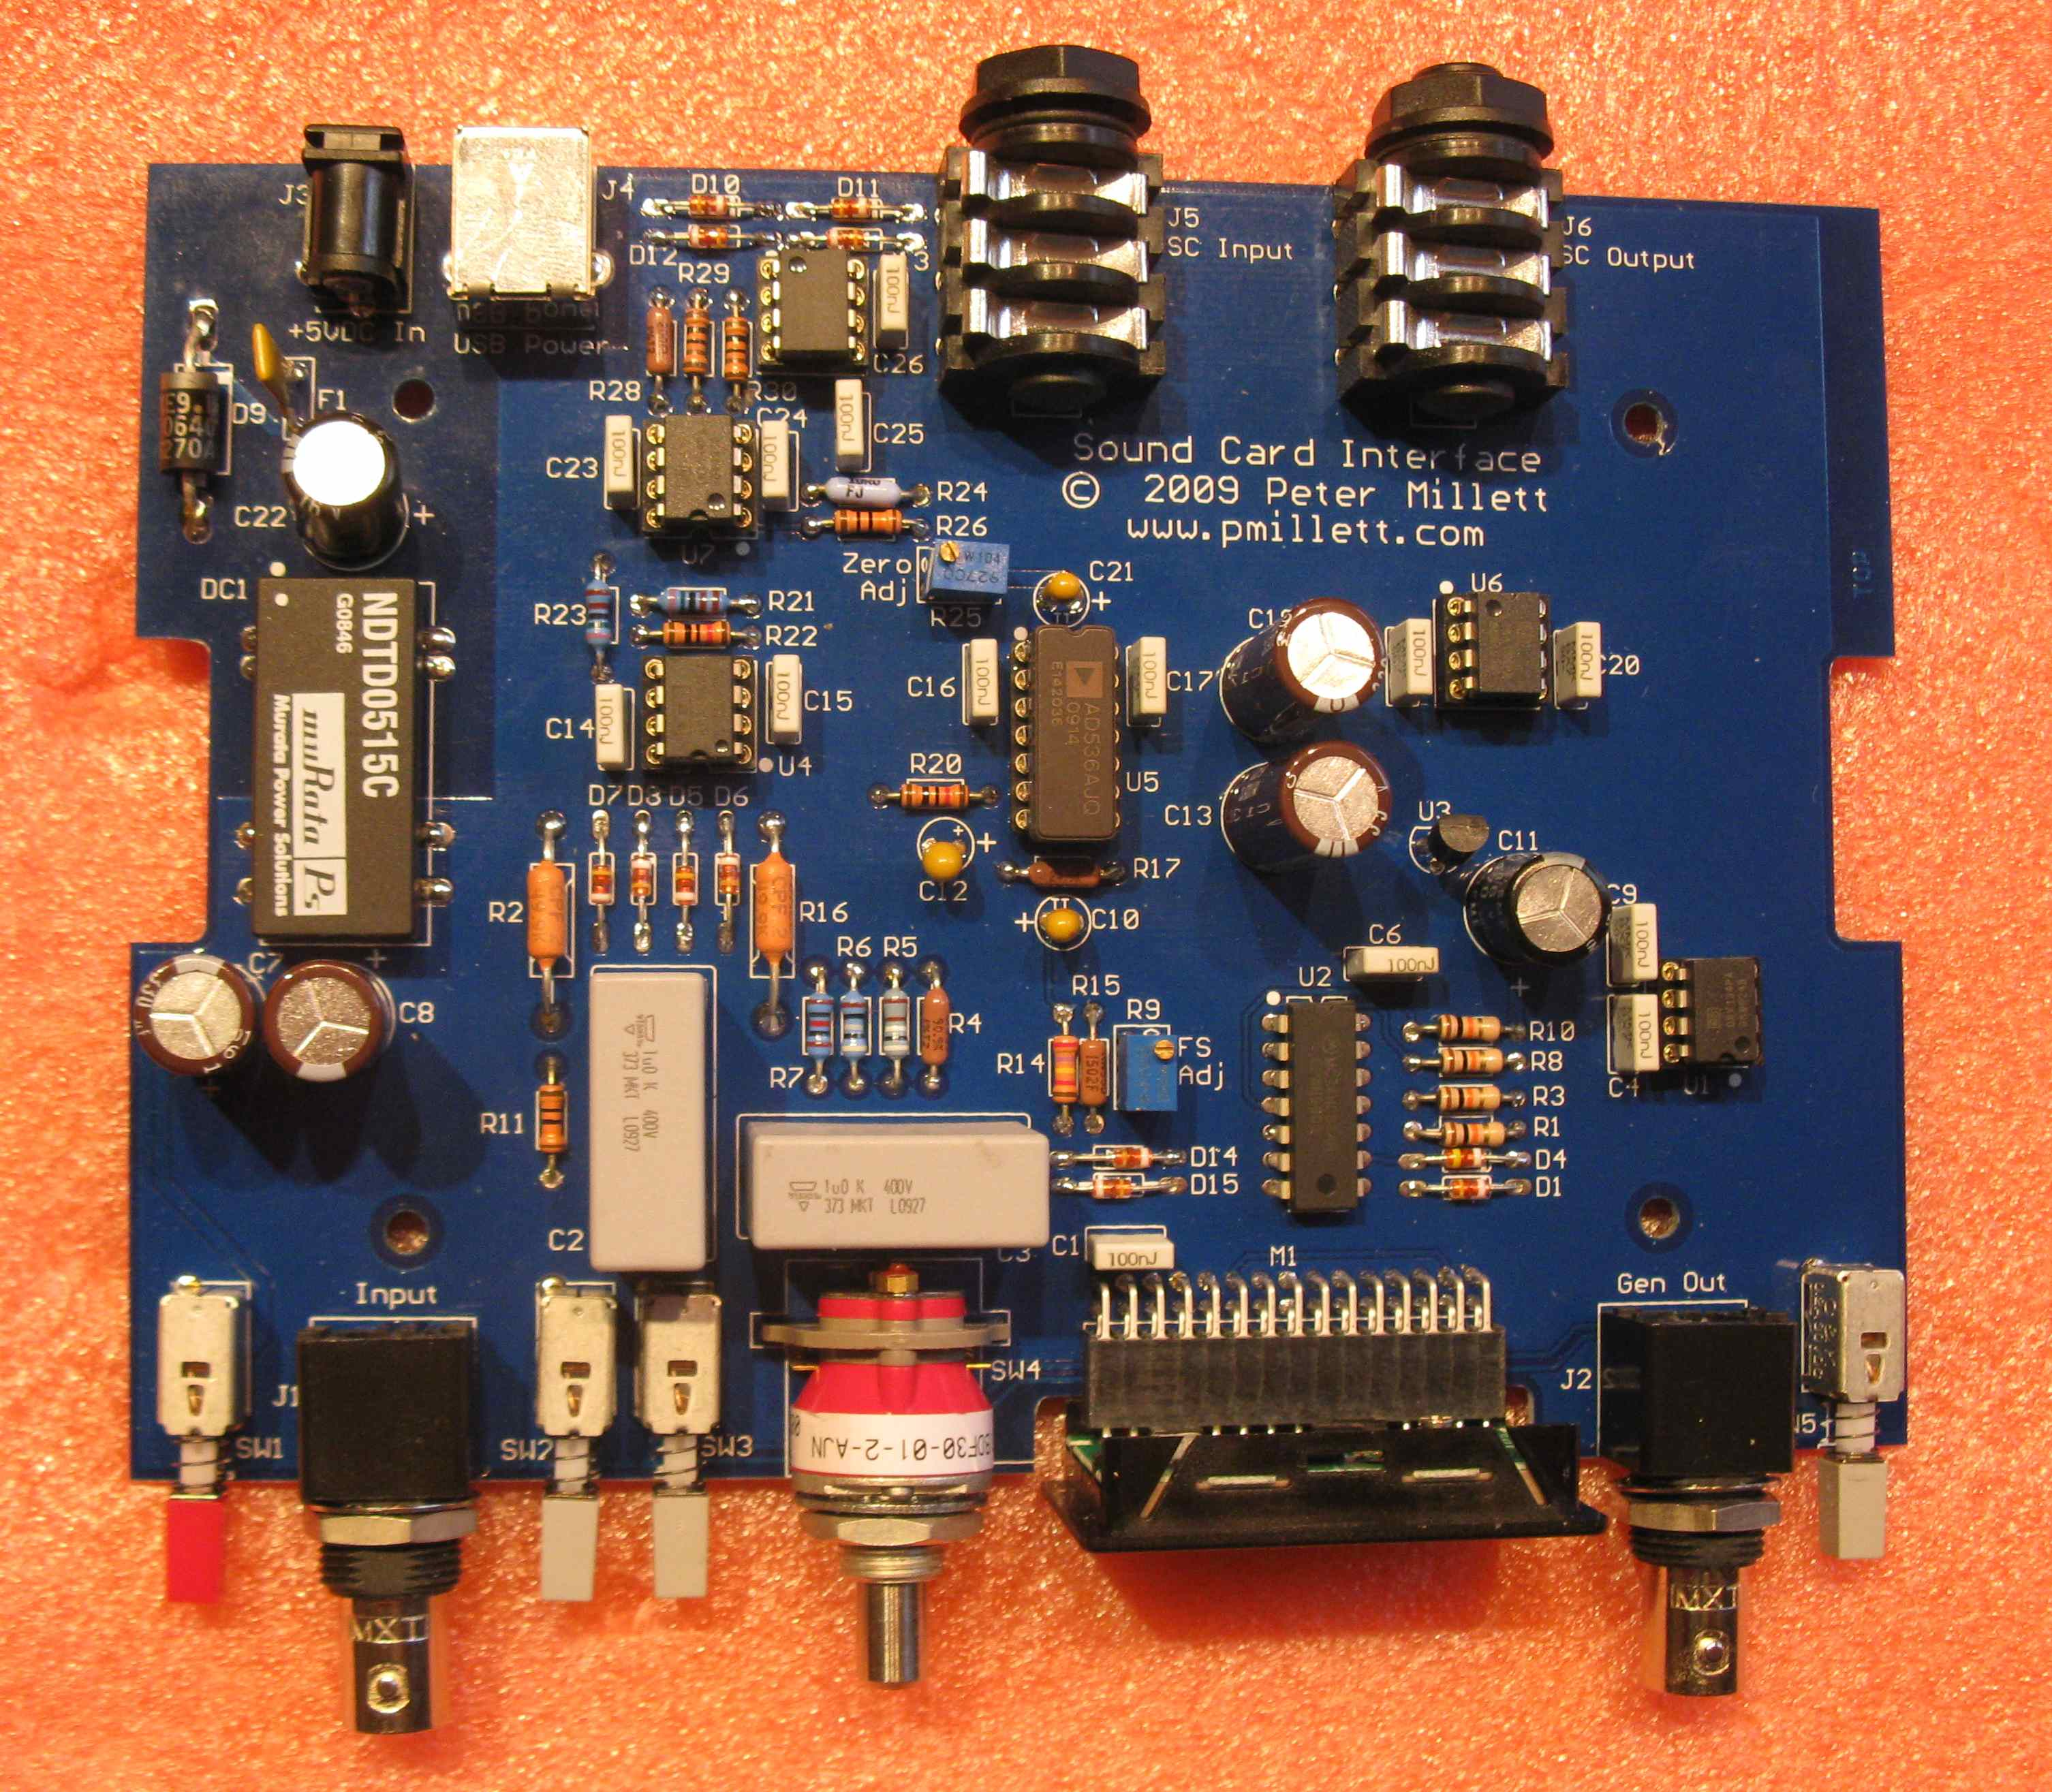 Soundcard Interface Opamp Tester Assembly Is As Simple Stuffing The Parts All Through Hole No Smt I Used Sockets For Audio Ics Though You Really Dont Need To